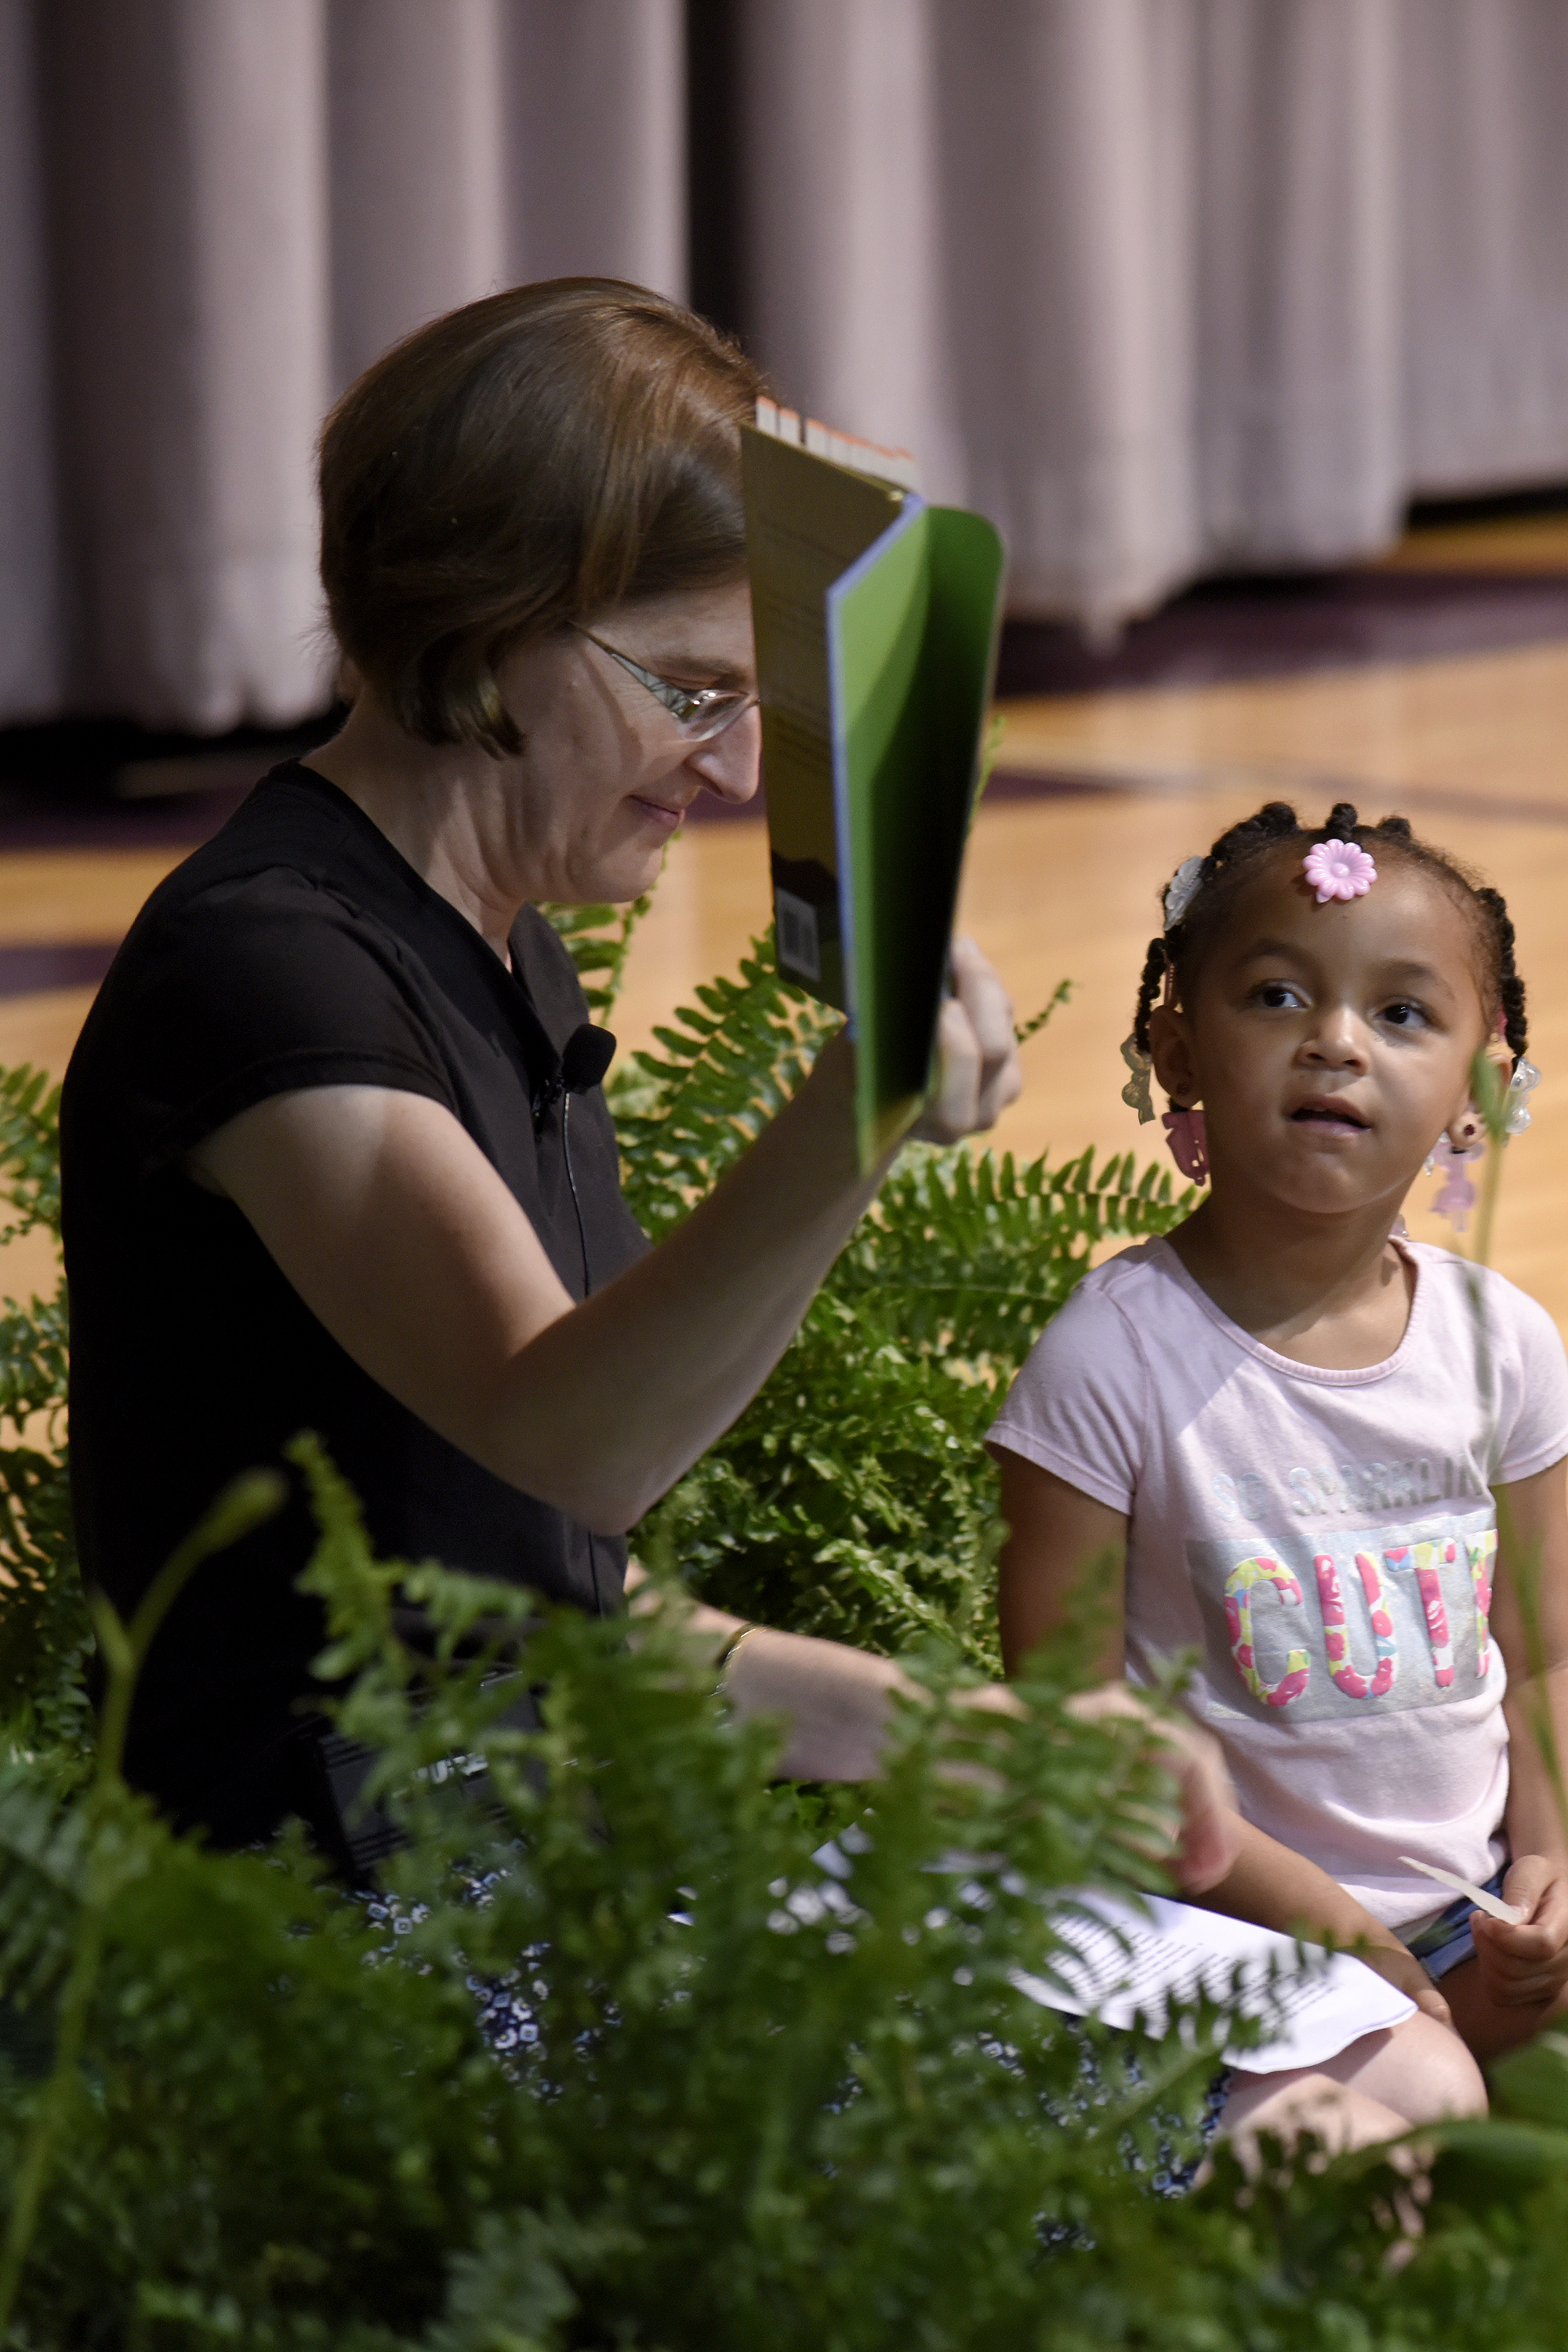 Rylee Tennant (right), age three, listens to Lisa Weaver tell the children's story during the worship service Thursday night during the Central District Conference, Thursday, June 22, 2017, at Bluffton University, Bluffton, OH. Tennant is the grandchild of Stephanie Ingram, who shared her experience with gun violence later in the service. Photograph by J. Tyler Klassen